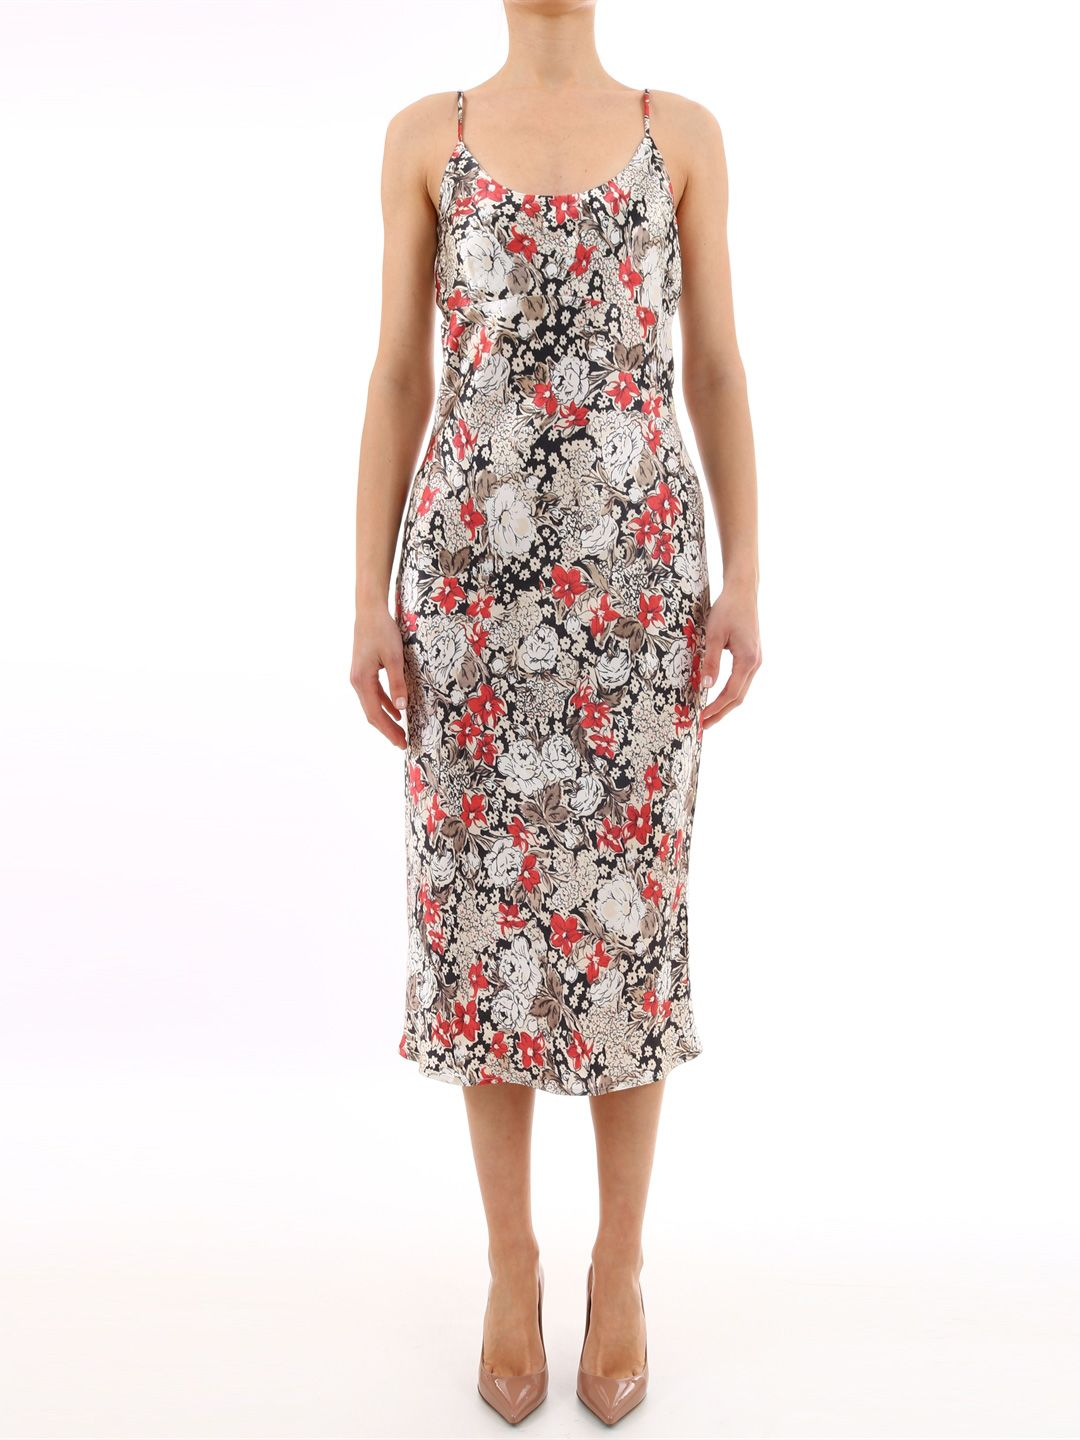 Ganni Satin Floral Dress